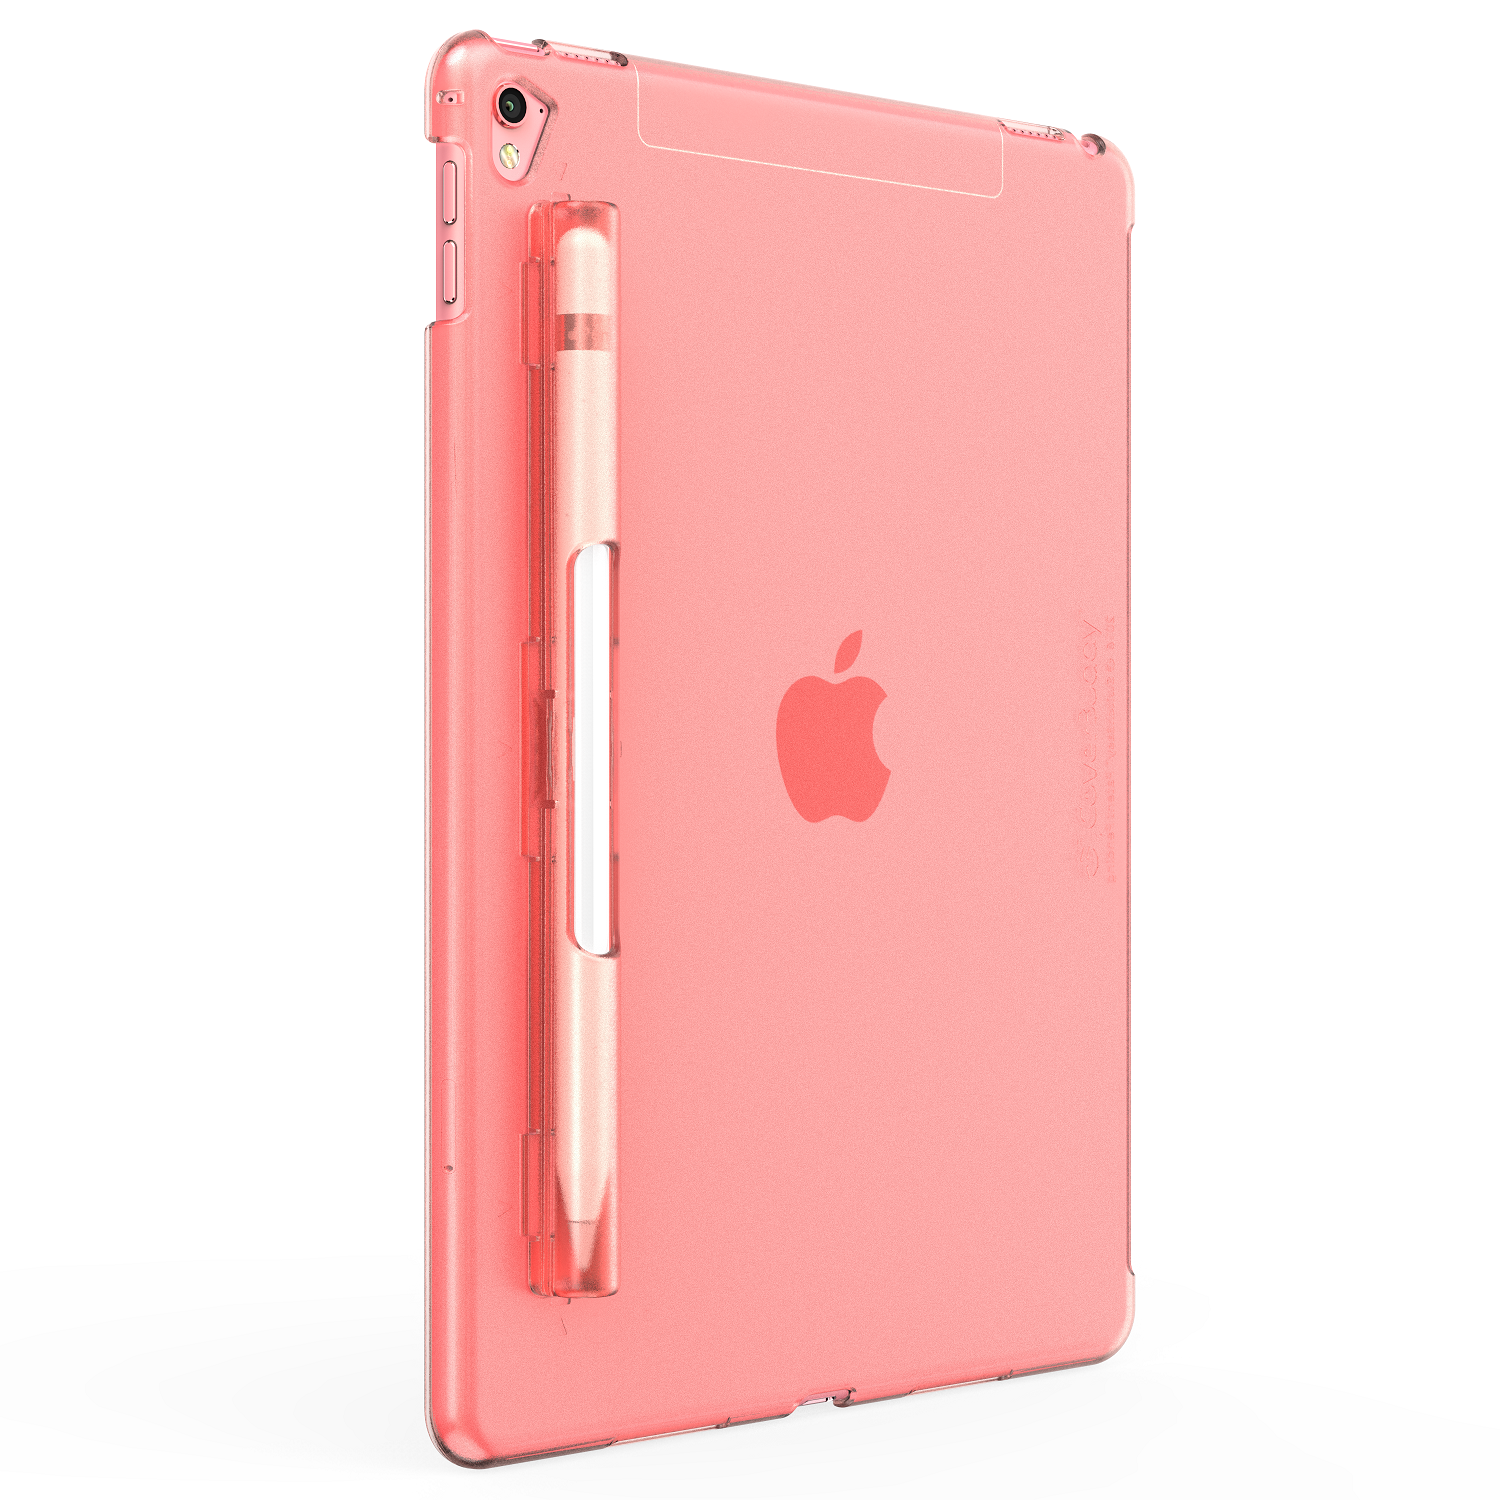 CoverBuddy offers the world's first patent pending interchangeable FULL BODY Apple Pencil holder. The design is minimalistic and smart, and its created to blend in with your iPad Pro.